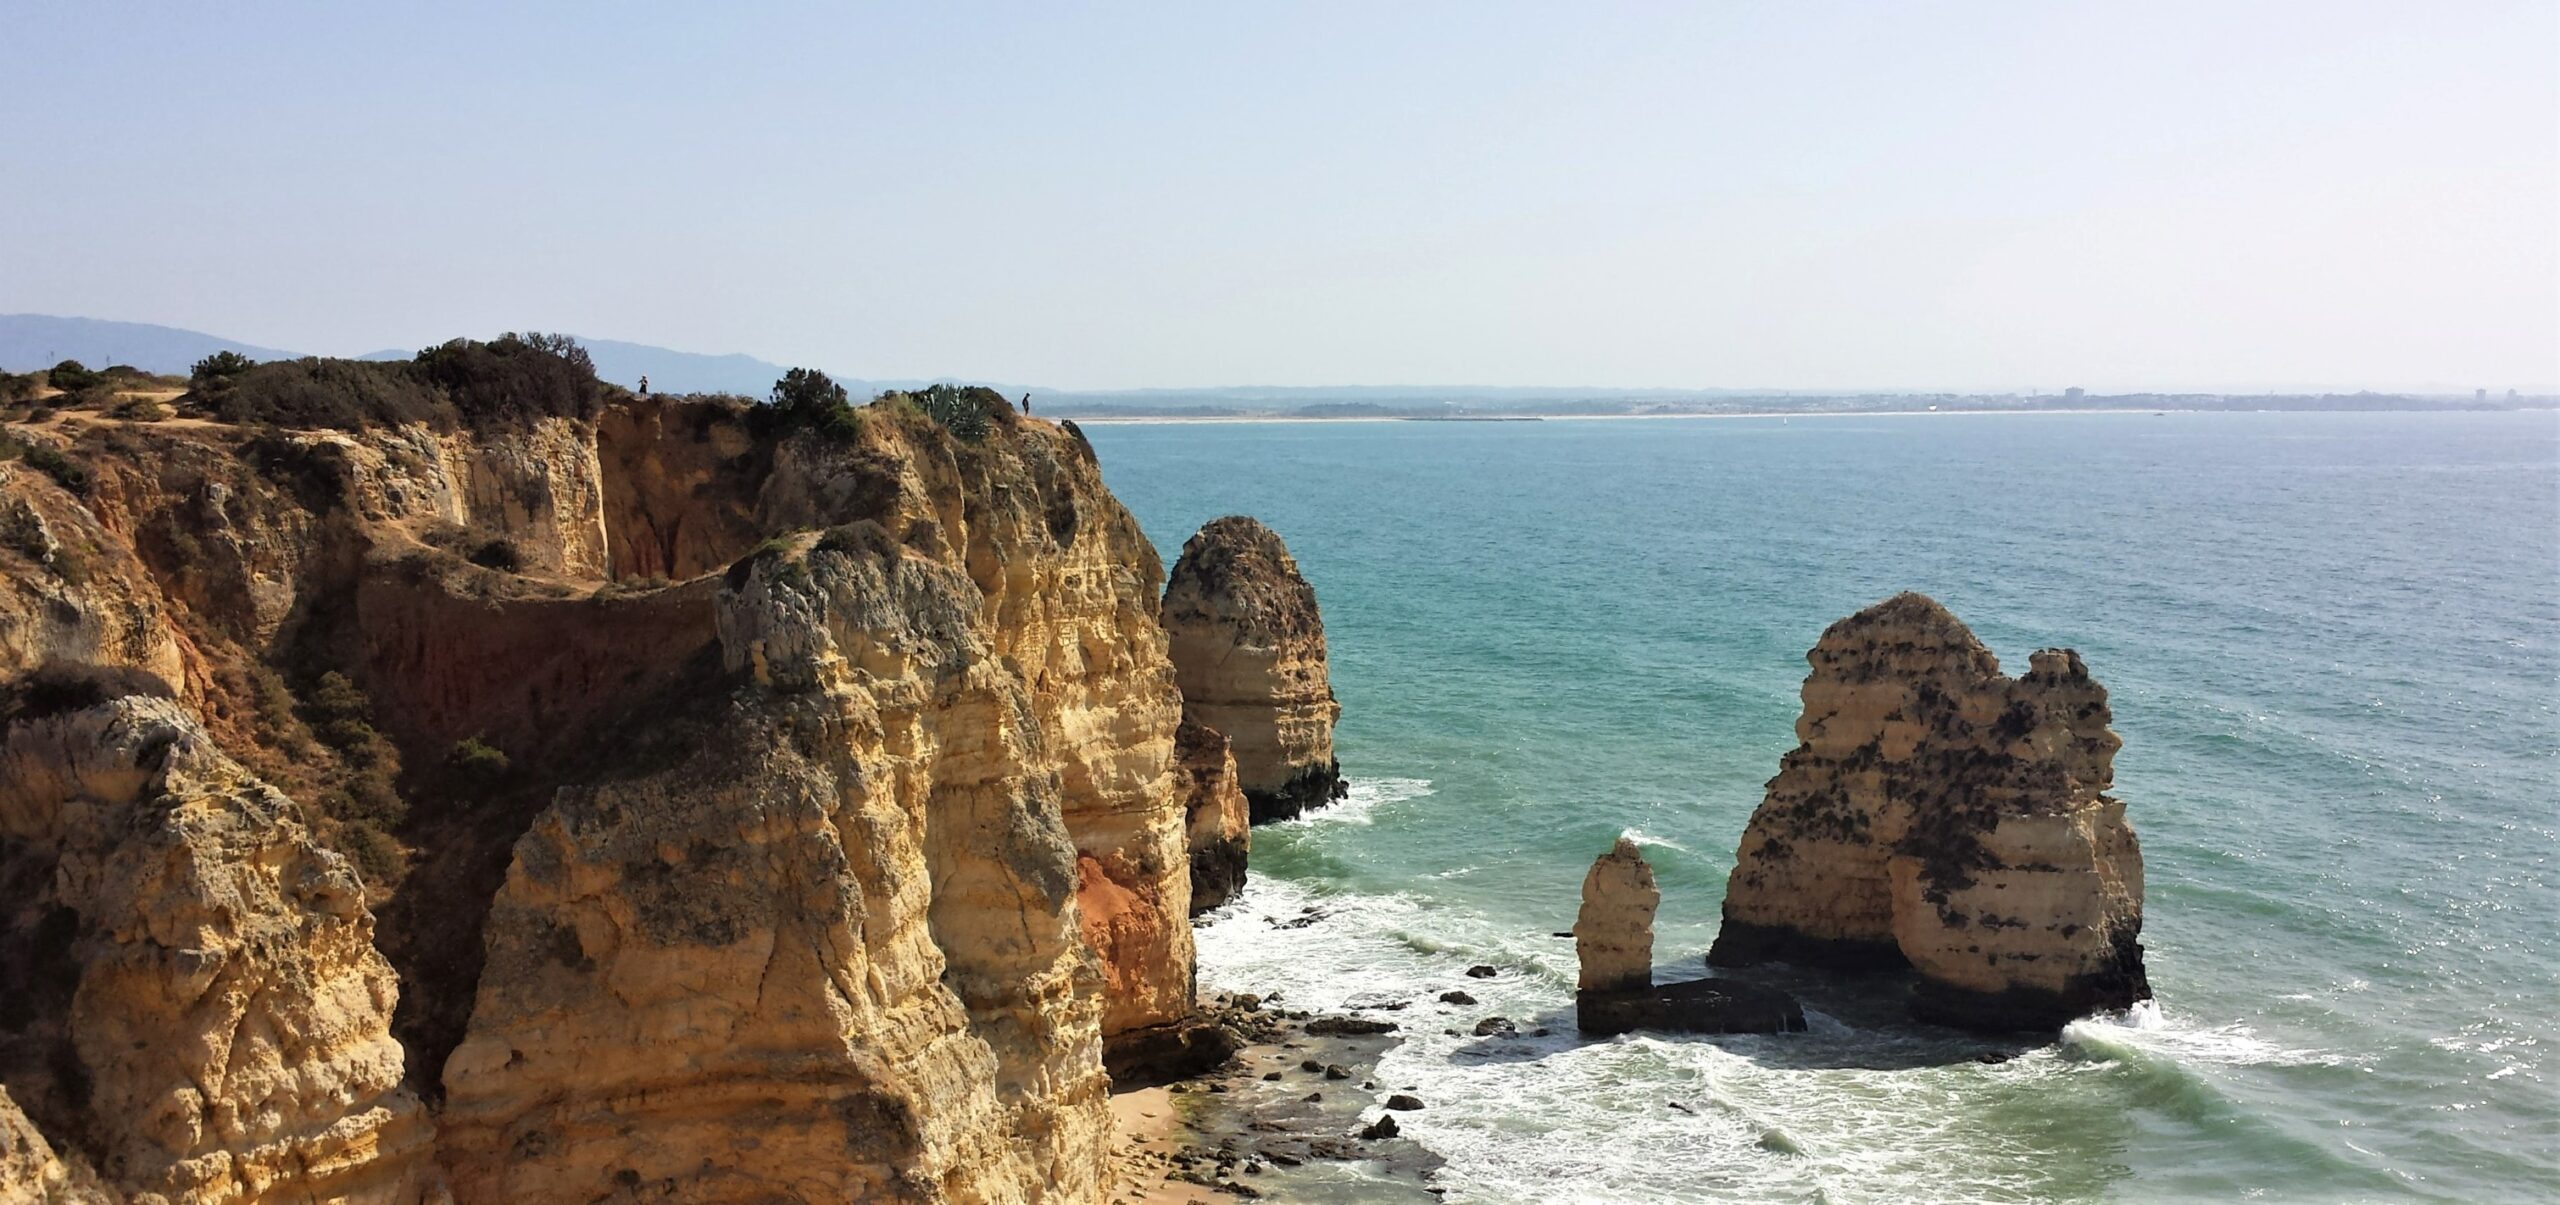 The 10 Best Beaches of Lagos Portugal